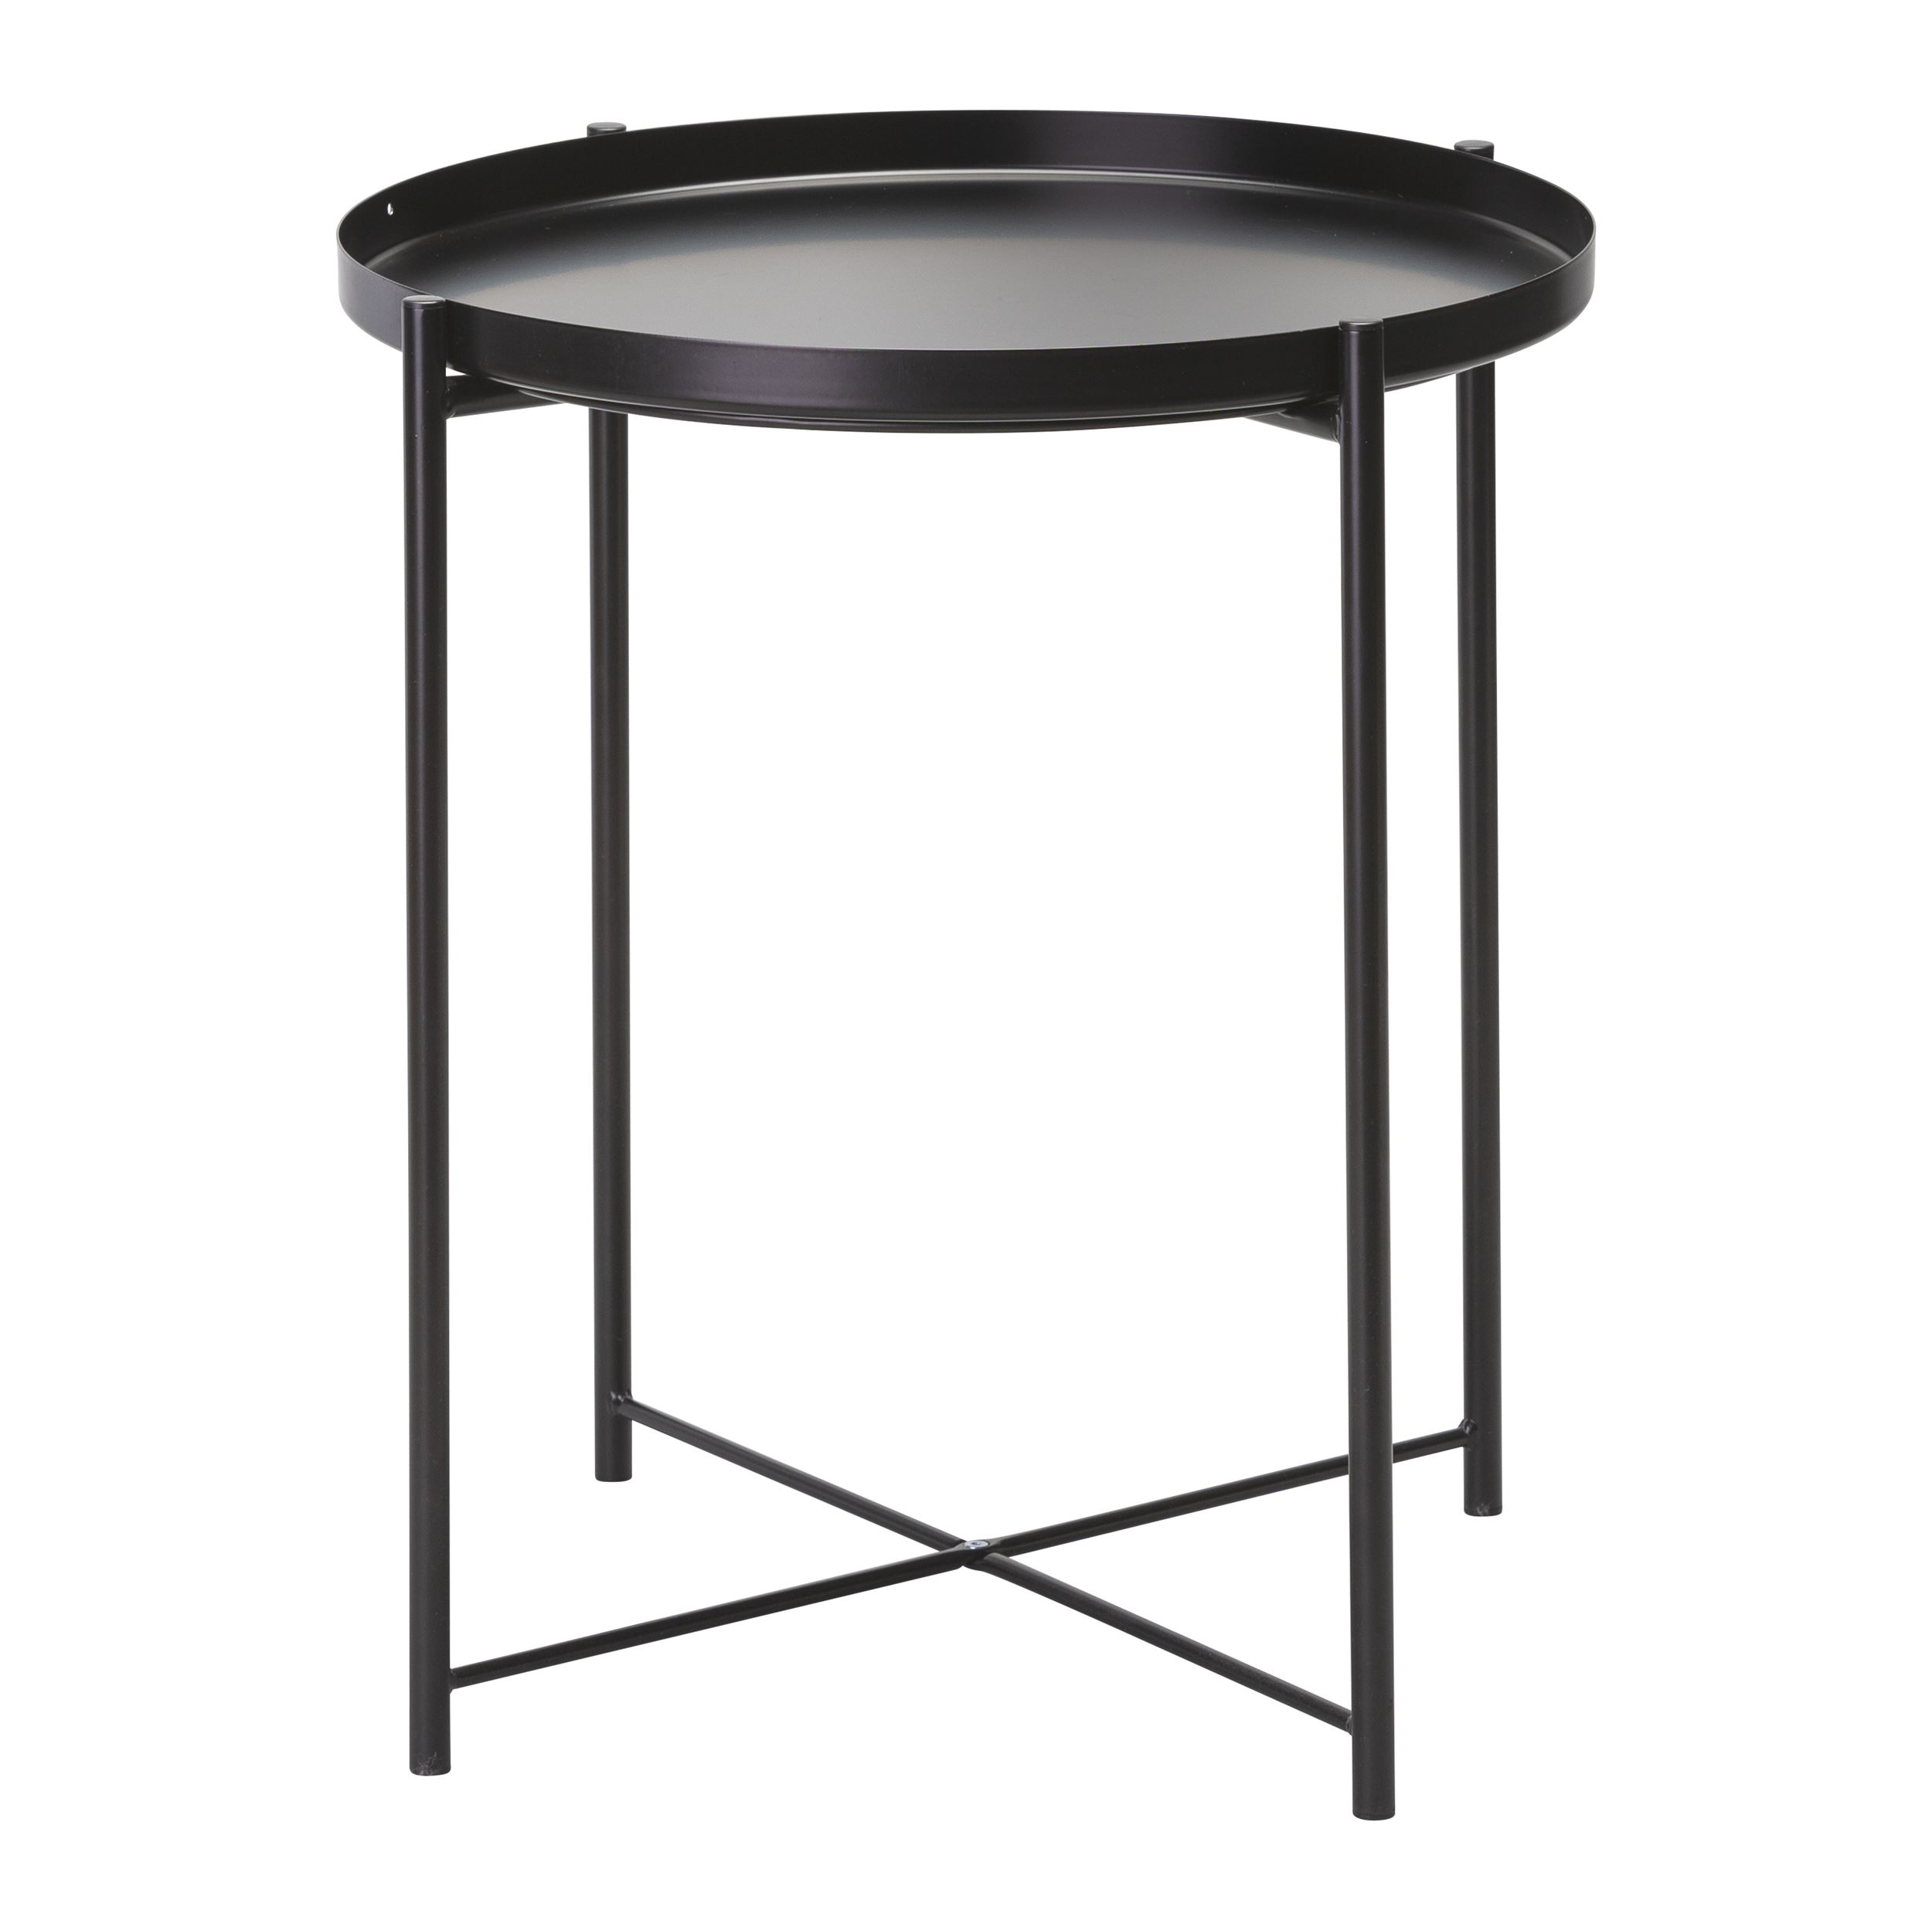 GLADOM - Tray table - IKEA